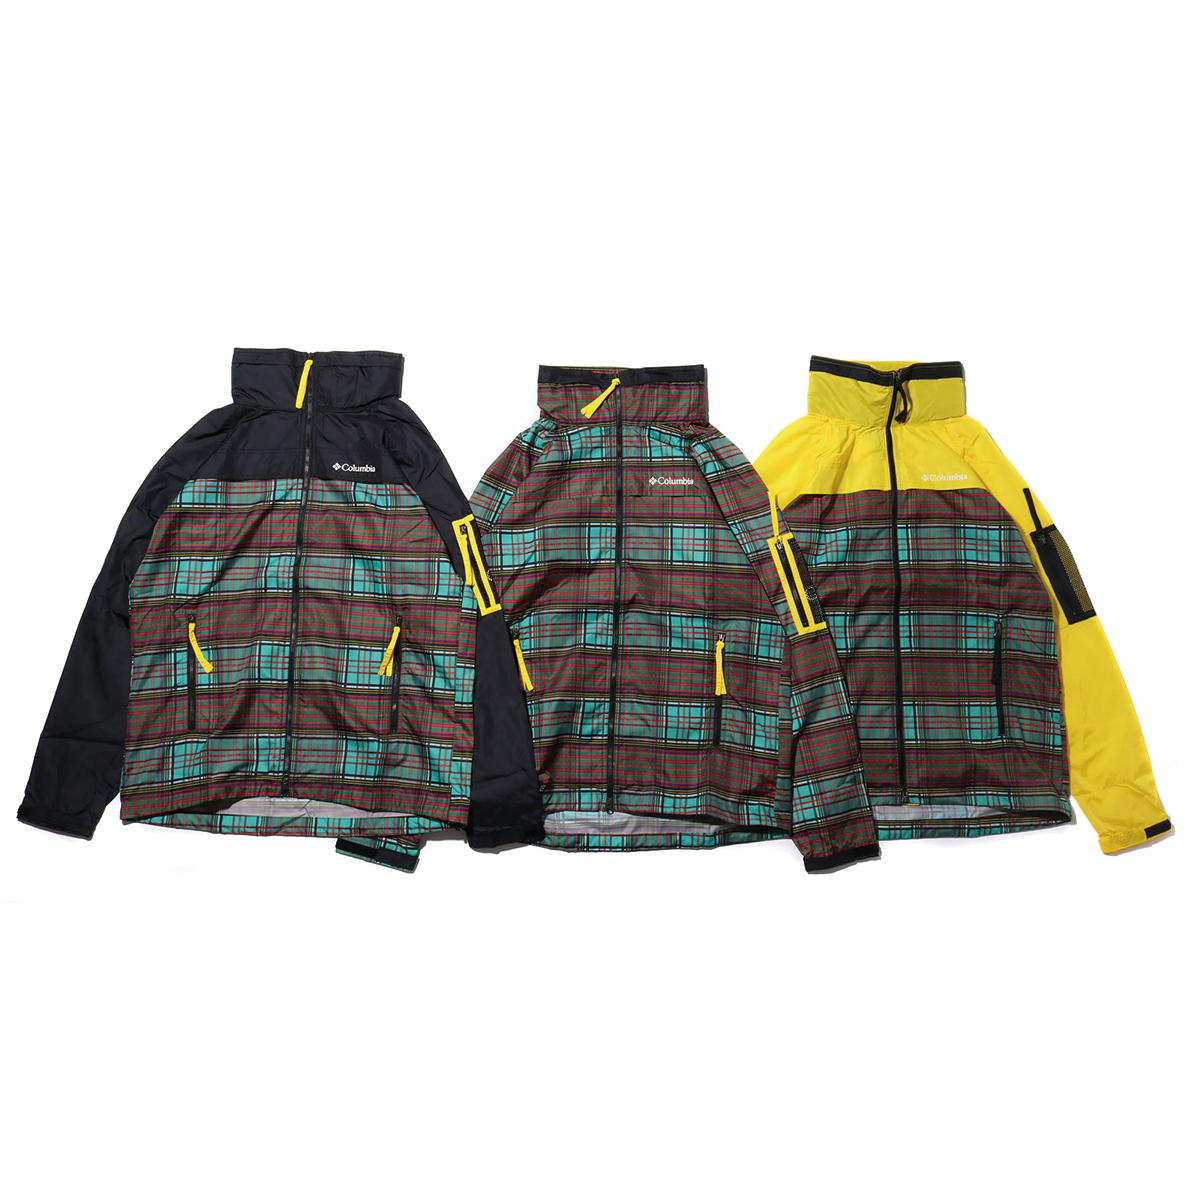 Columbia x ATMOS LAB SAWTOOTH TXT JACKET